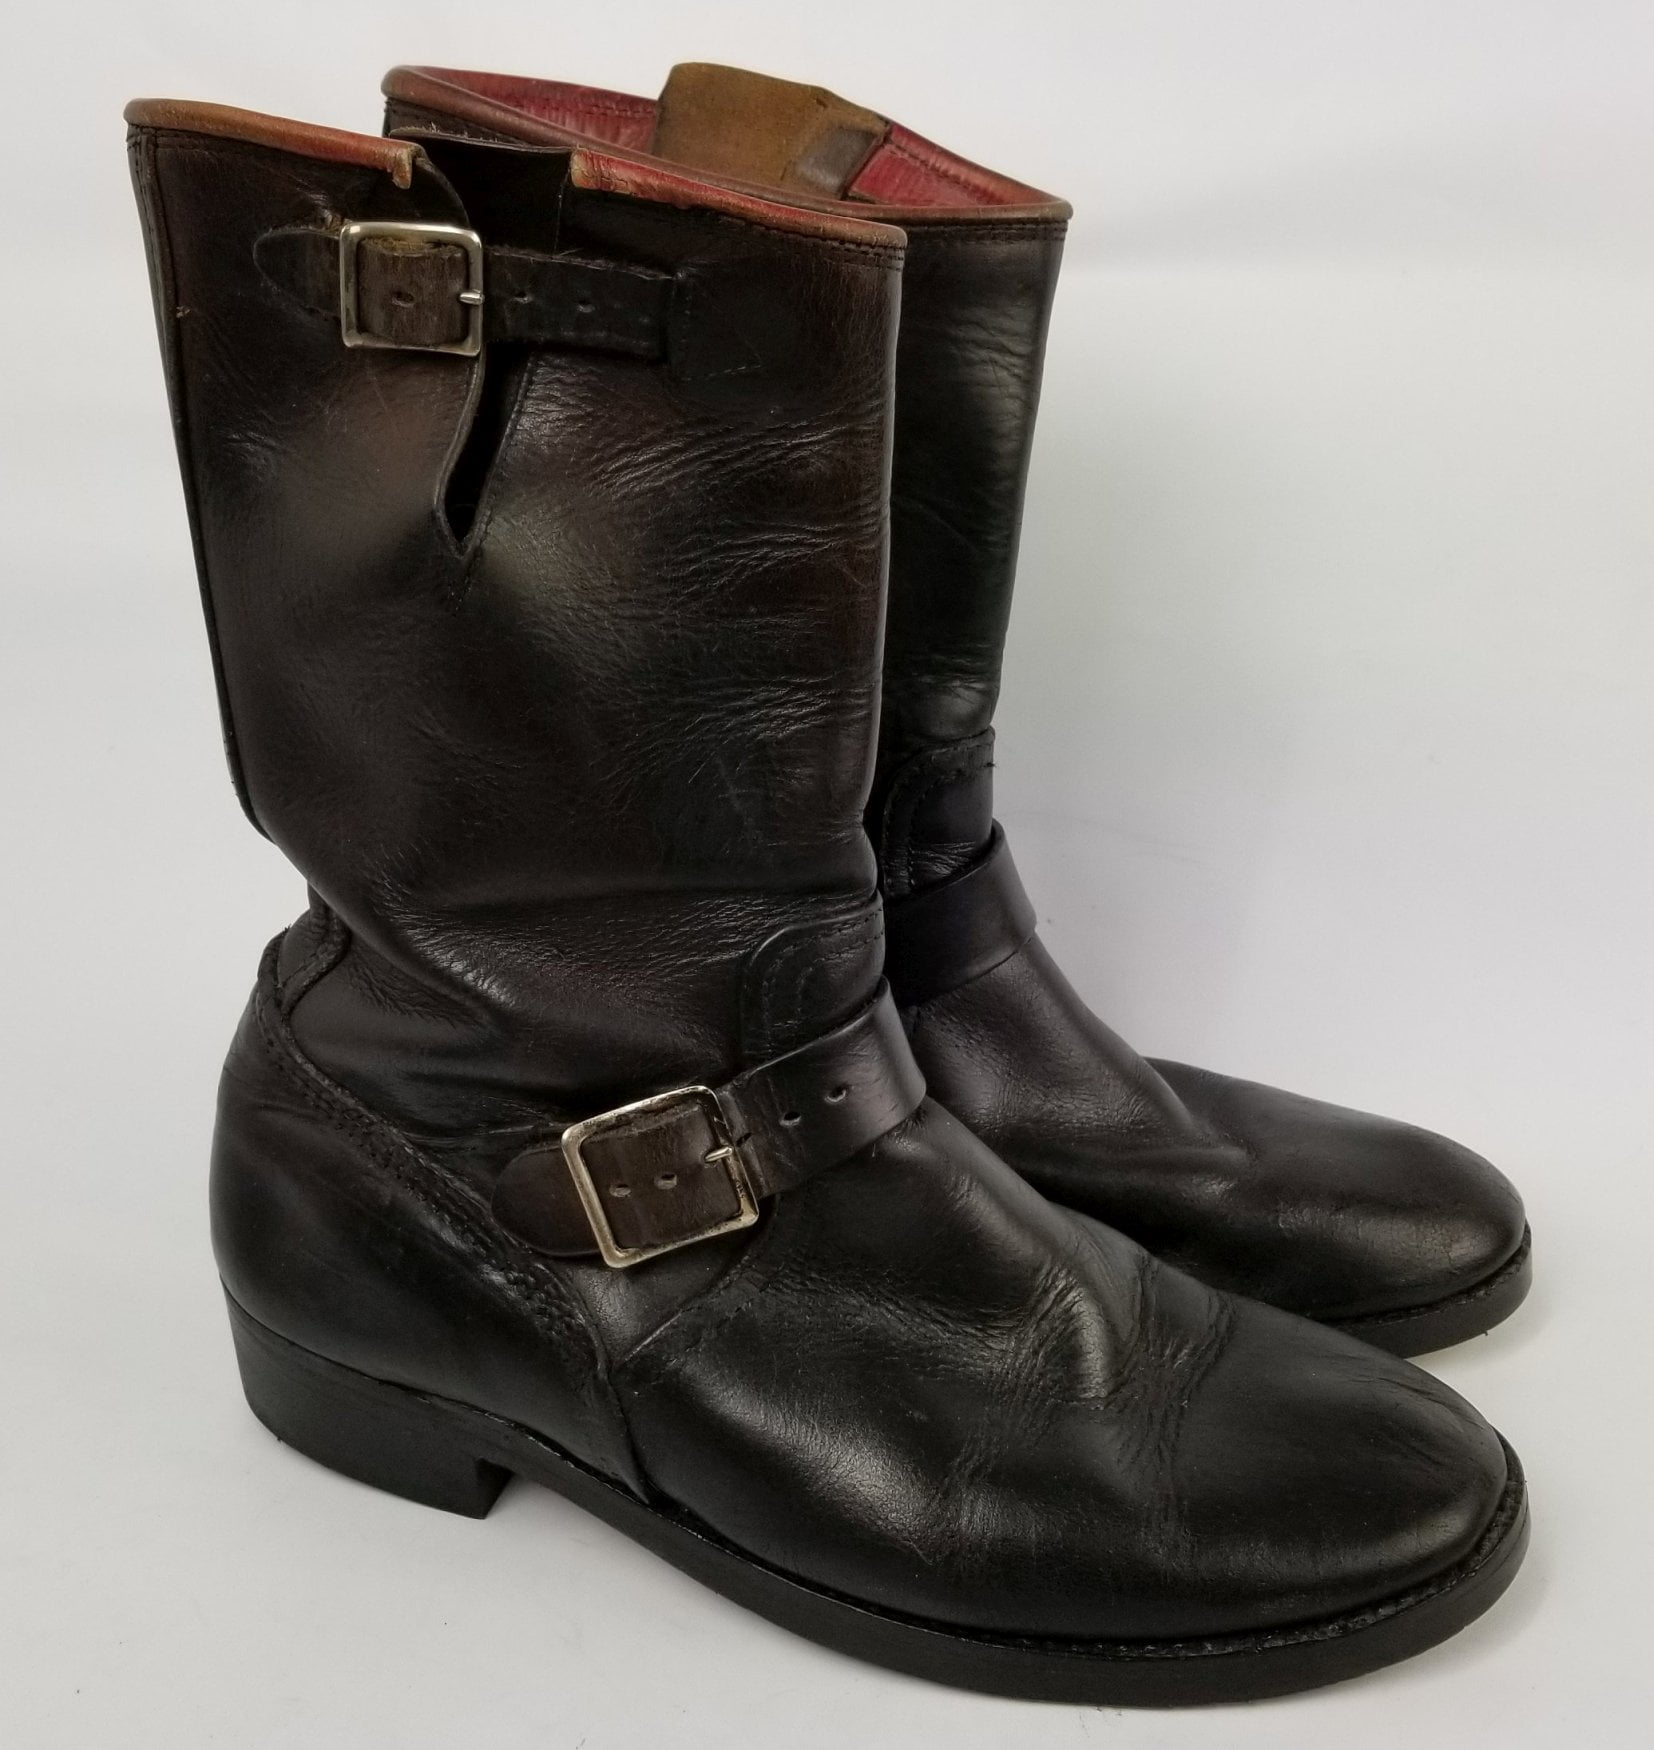 Vintage Engineer Boots 24500 – Size 40 (men's 8, women's 9.5)